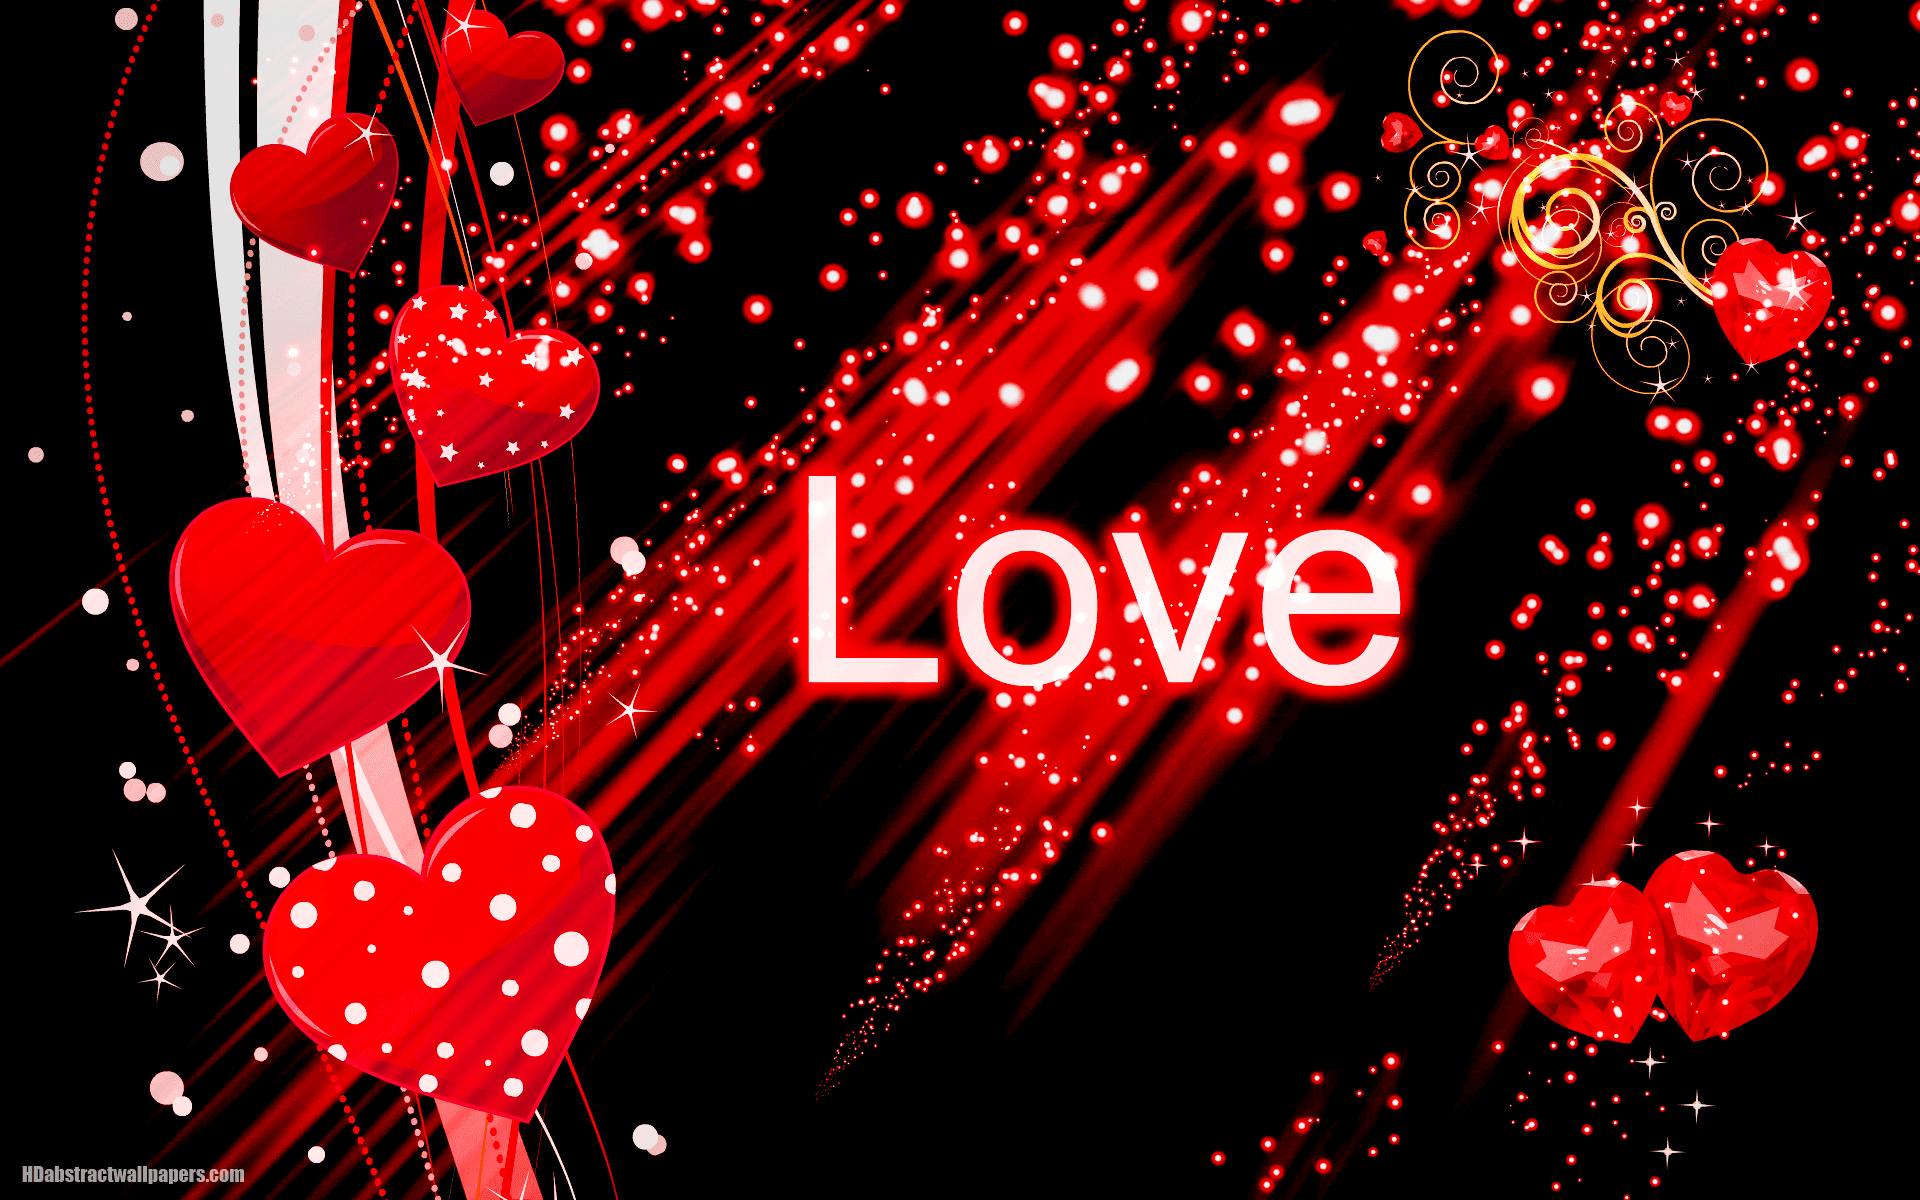 Love Wallpapers With Text : Beautiful Black Love Wallpaper